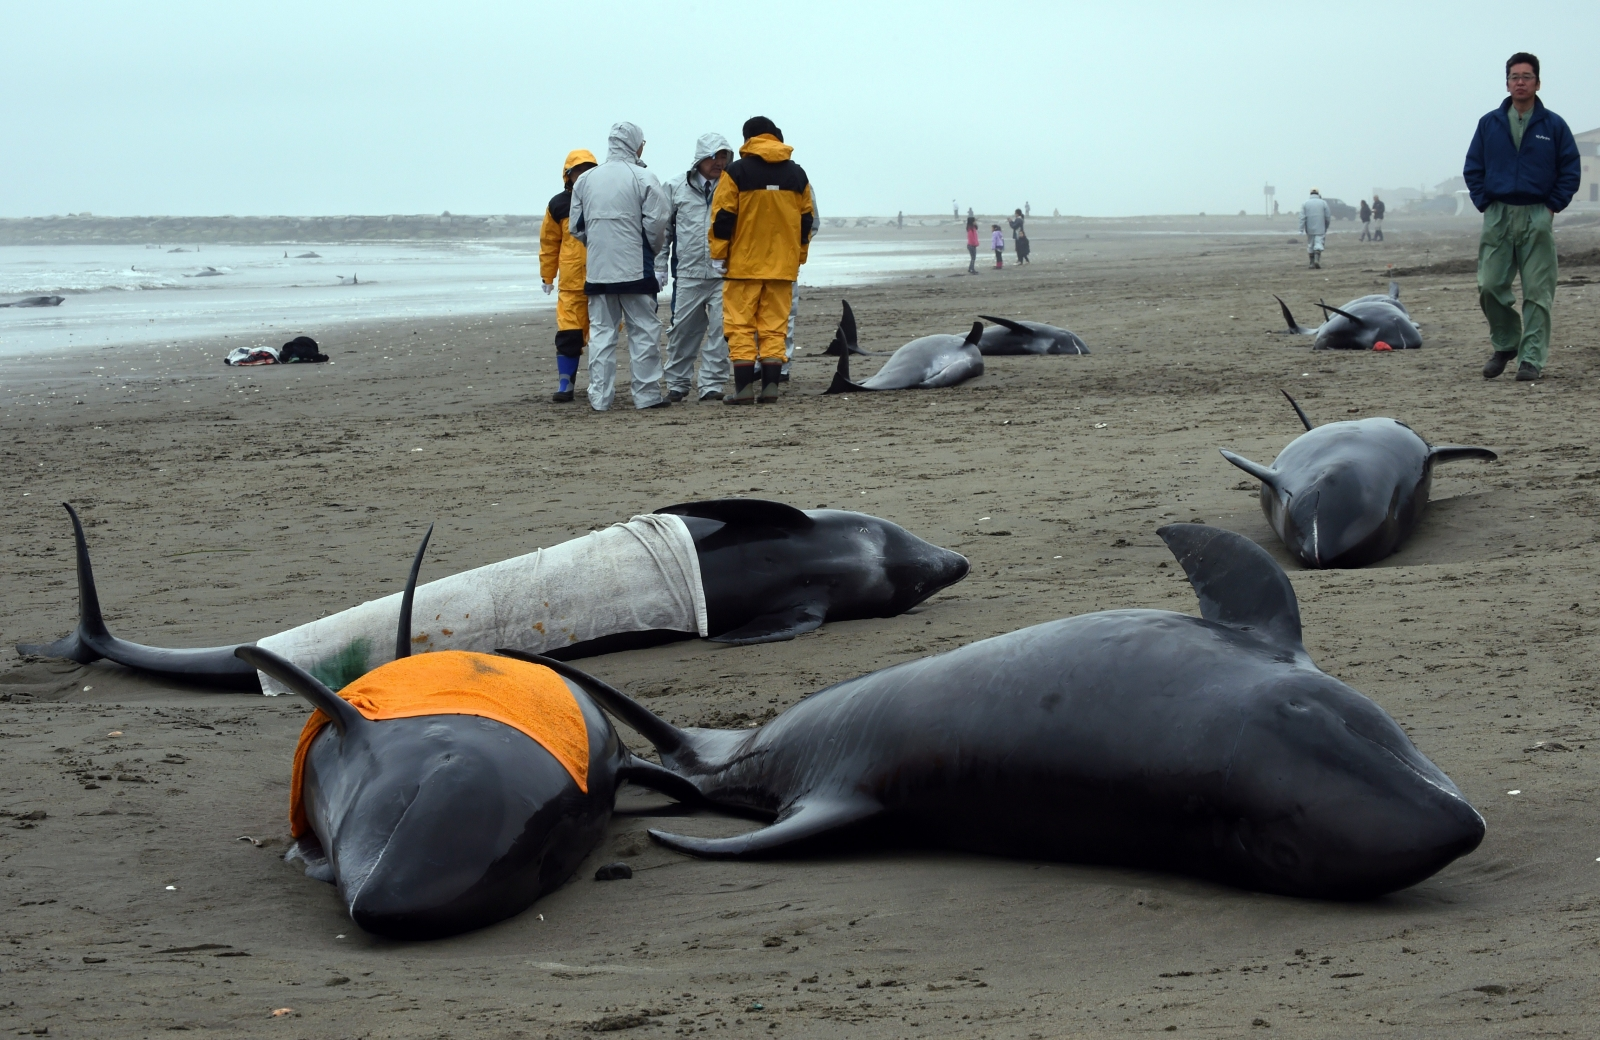 Beached dolphins - photo#8